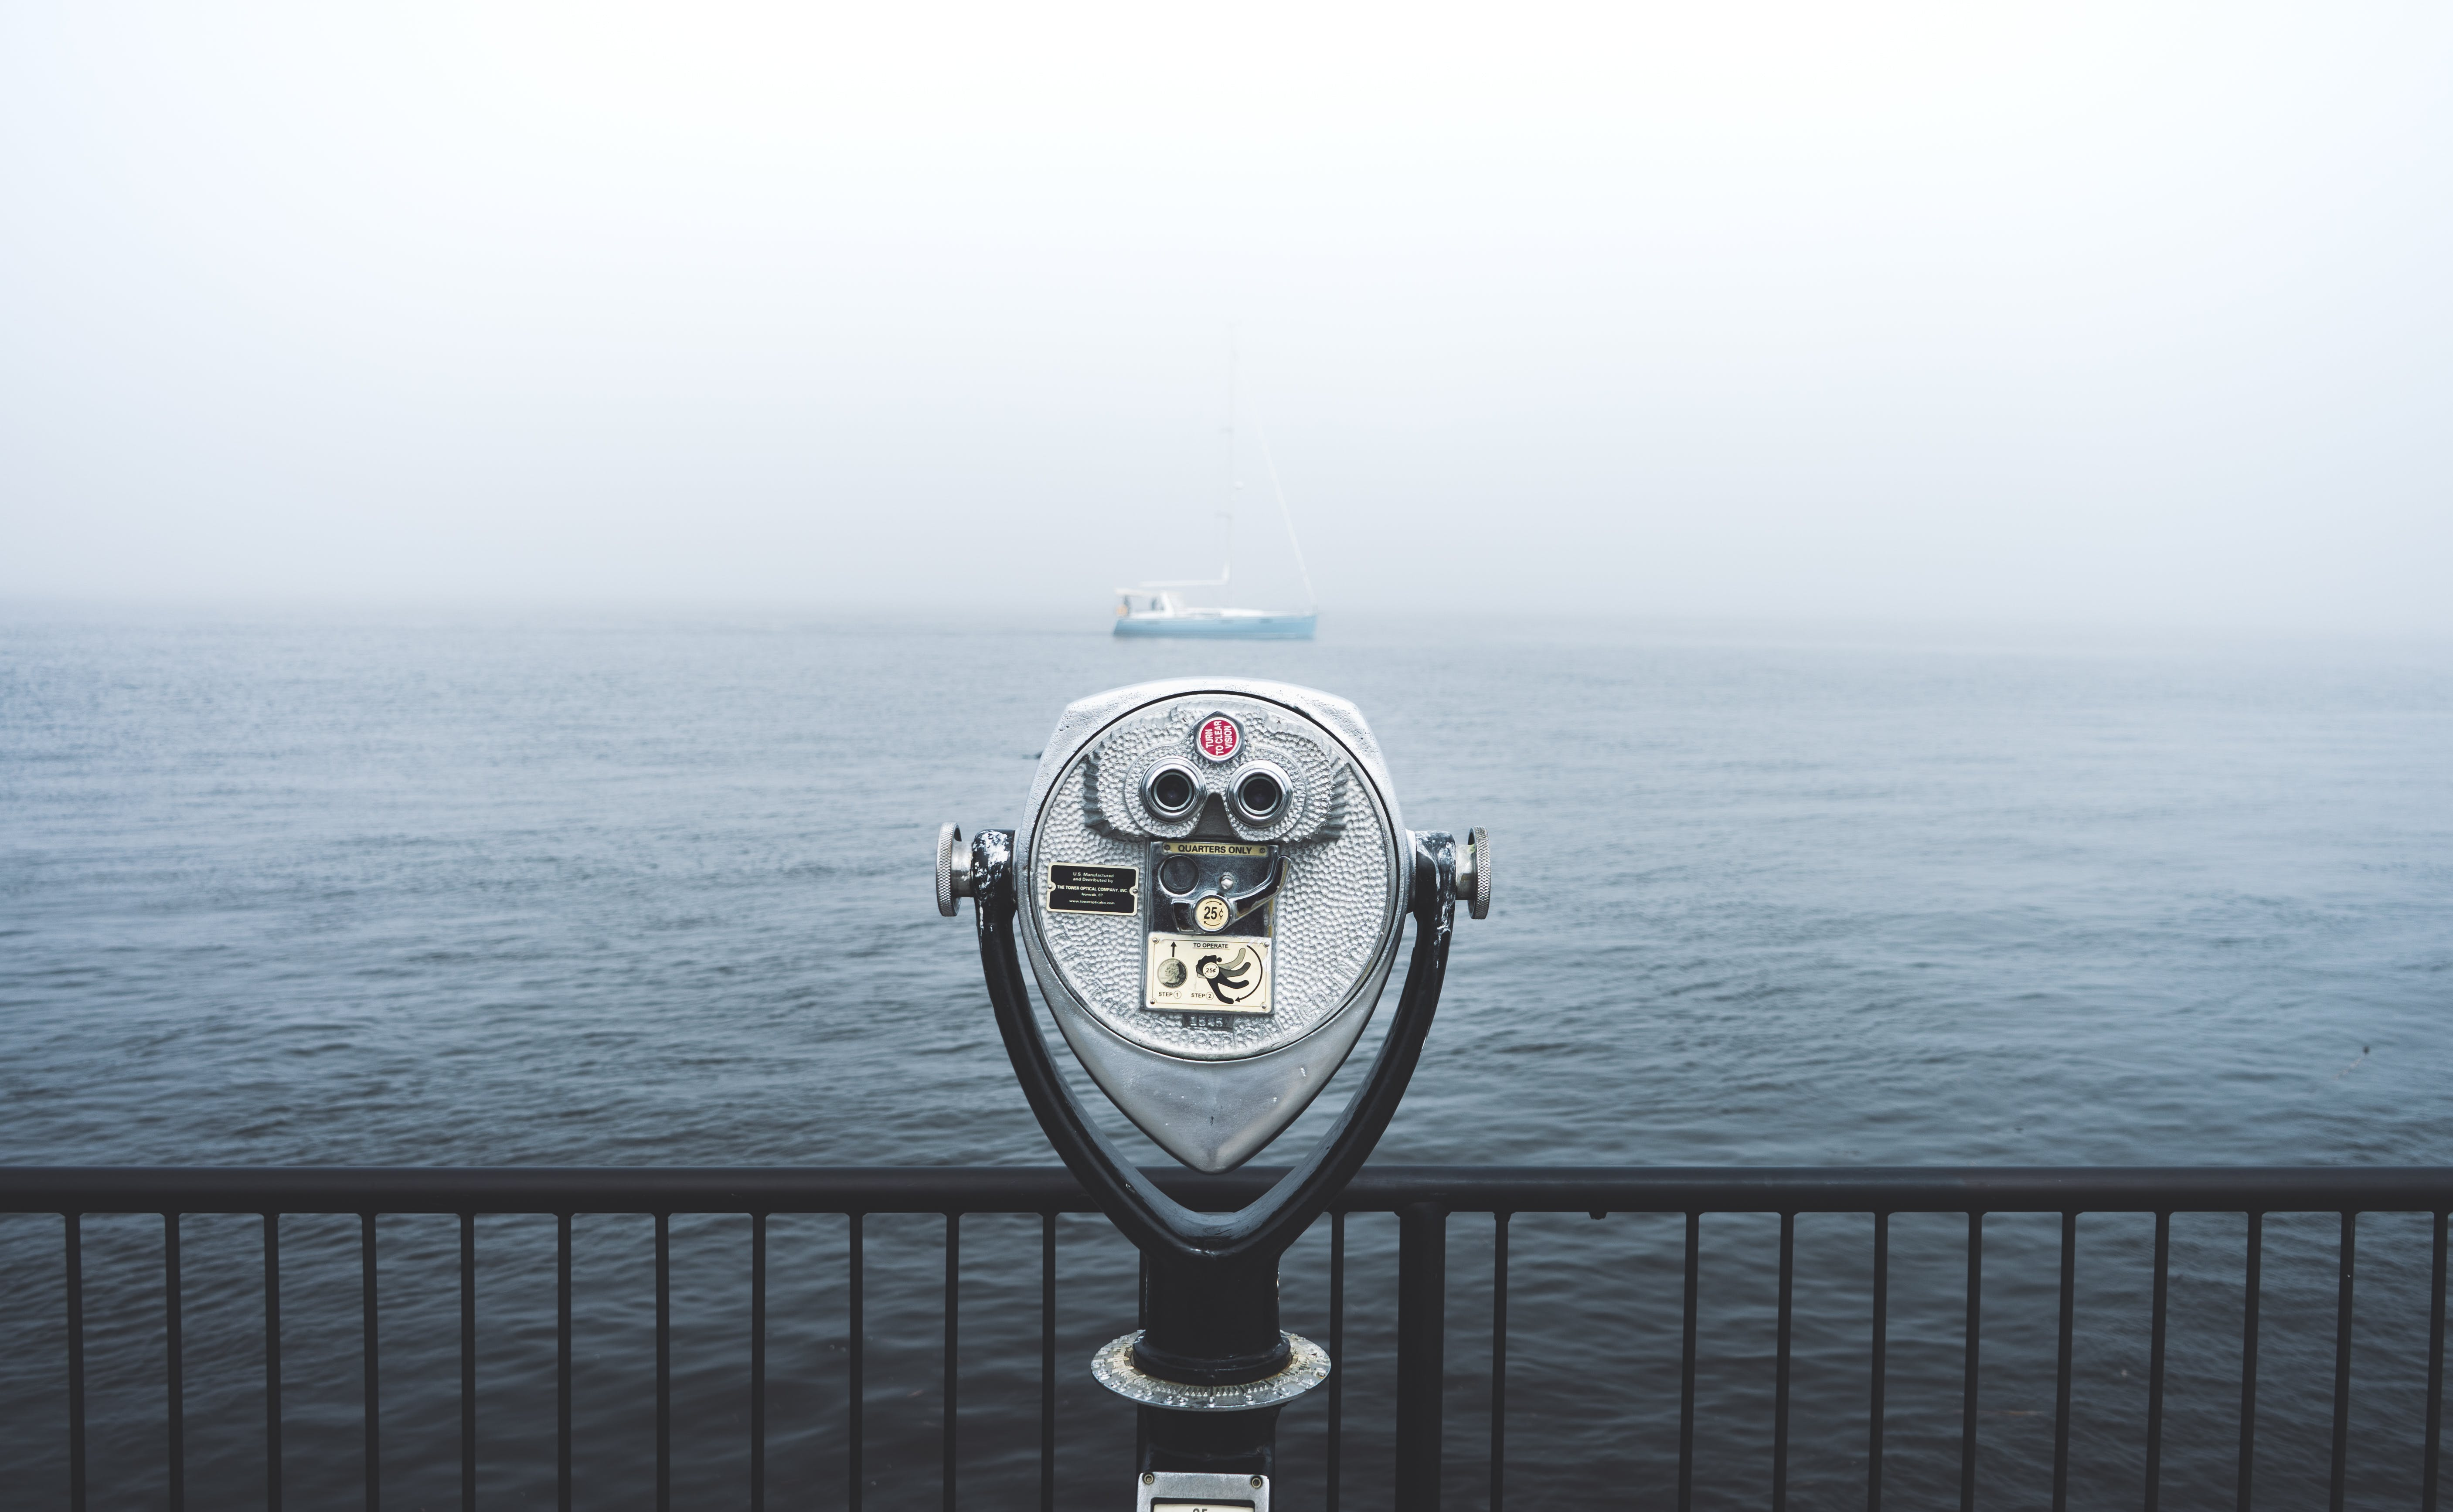 Telescope in Front of Body of Water